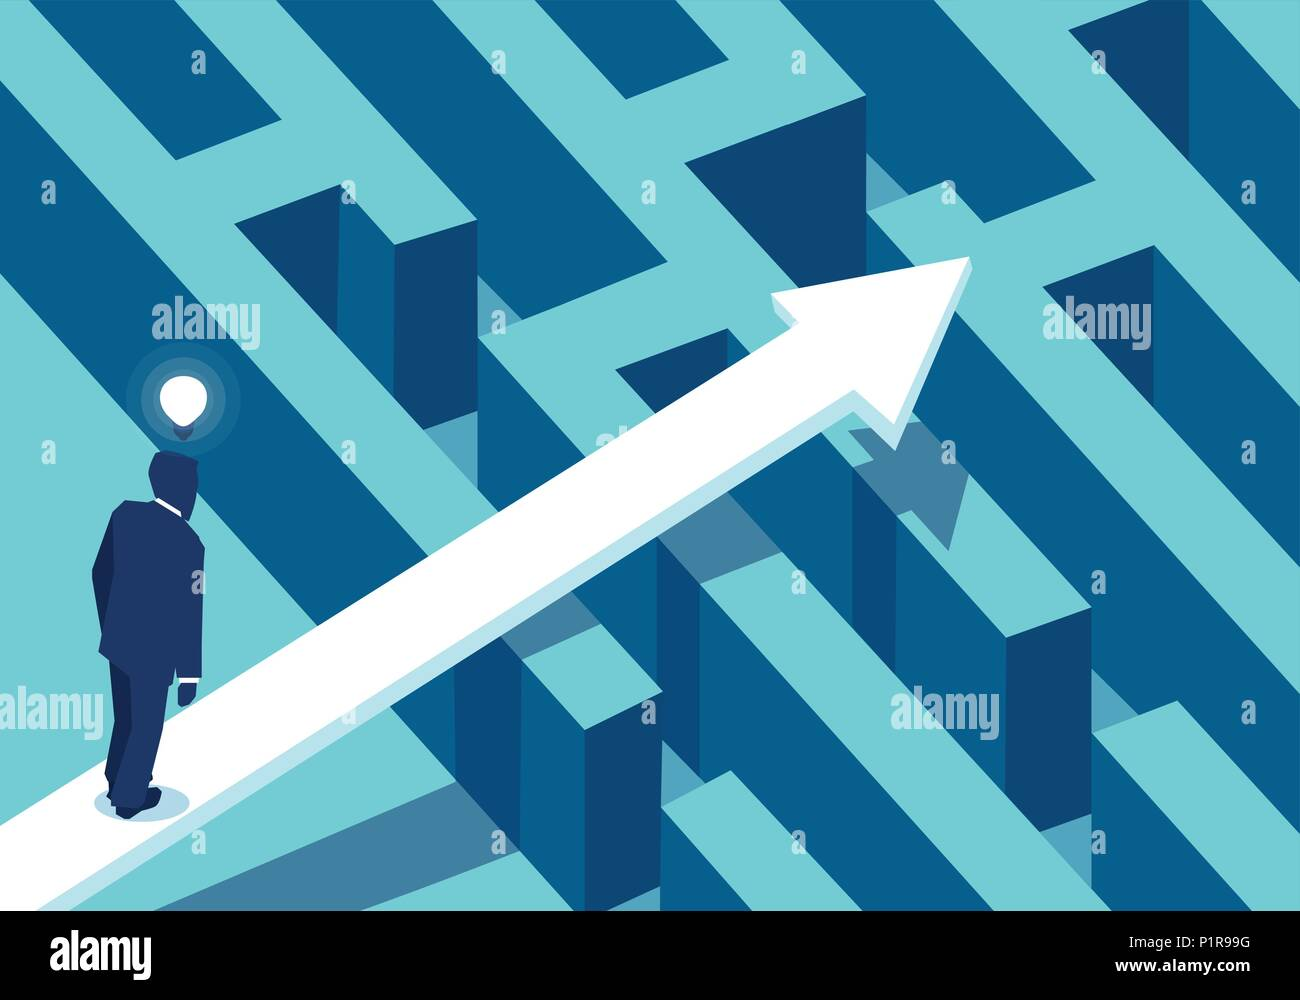 Vector illustration of businessman in puzzlement standing near labyrinth following arrow to success. - Stock Image